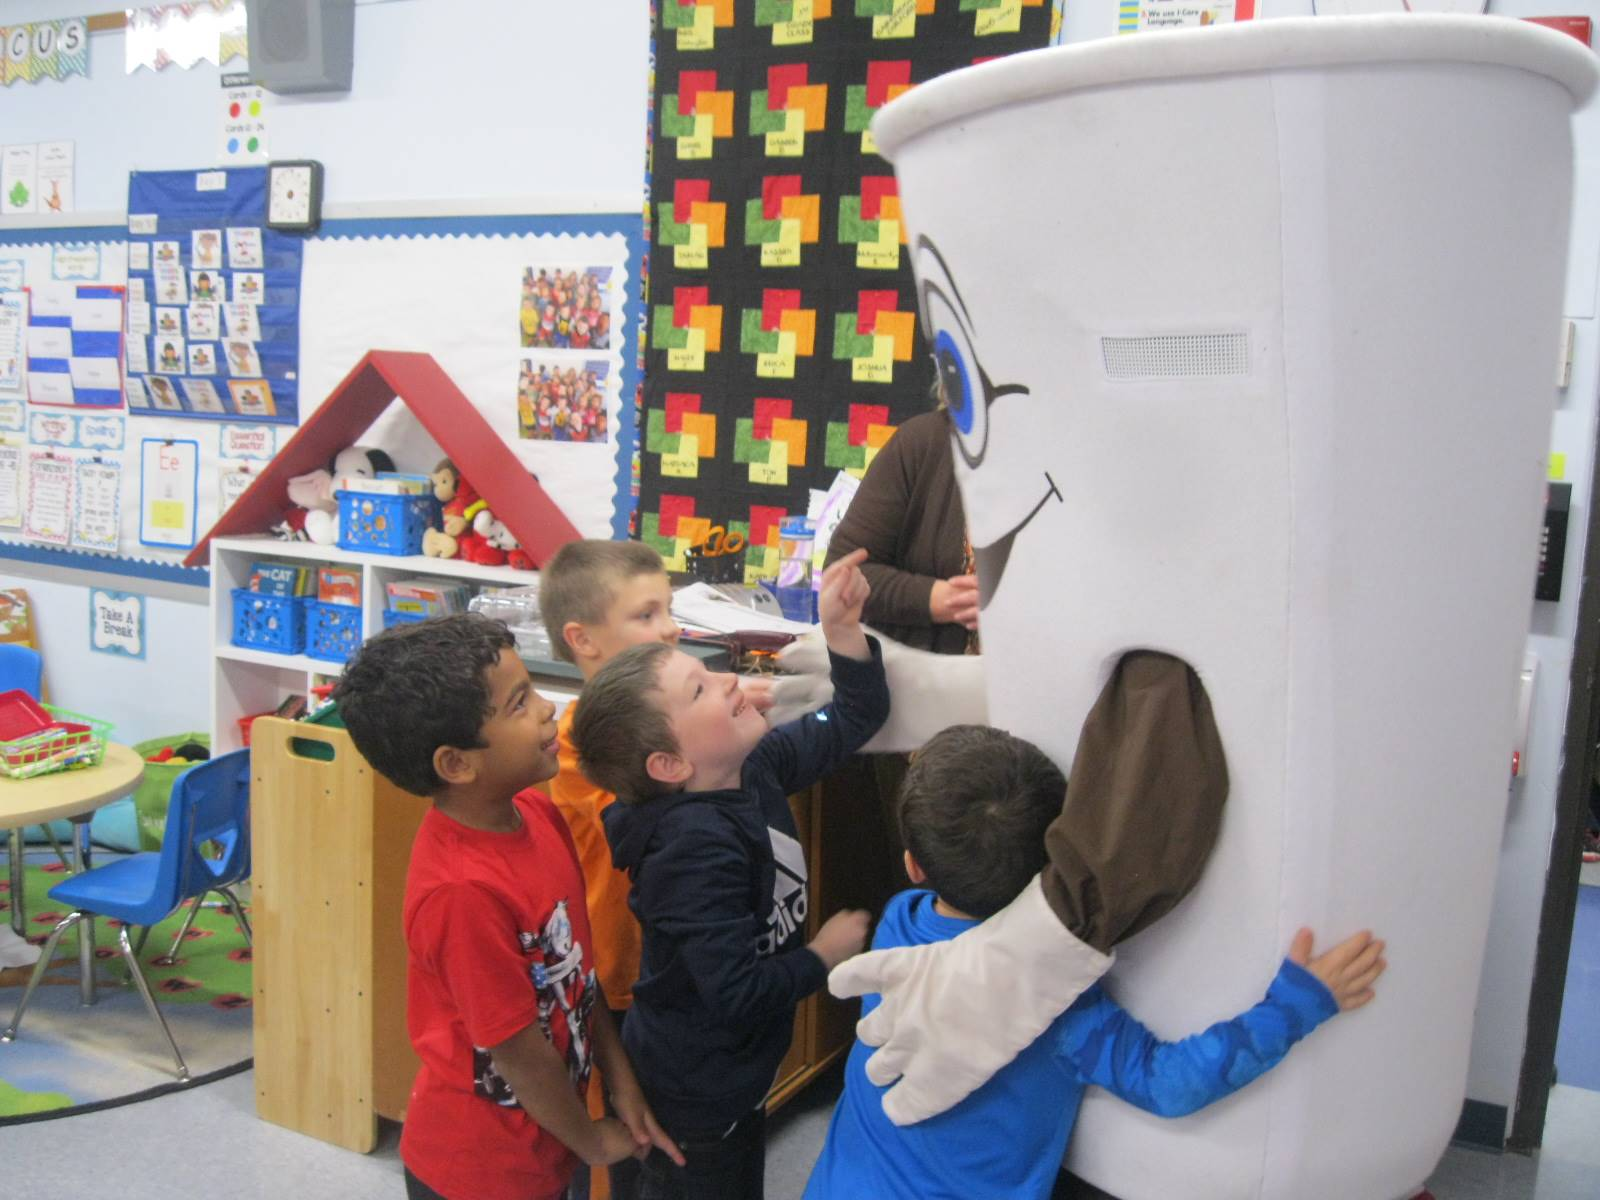 Dunkin donut man gives high 5s to students.